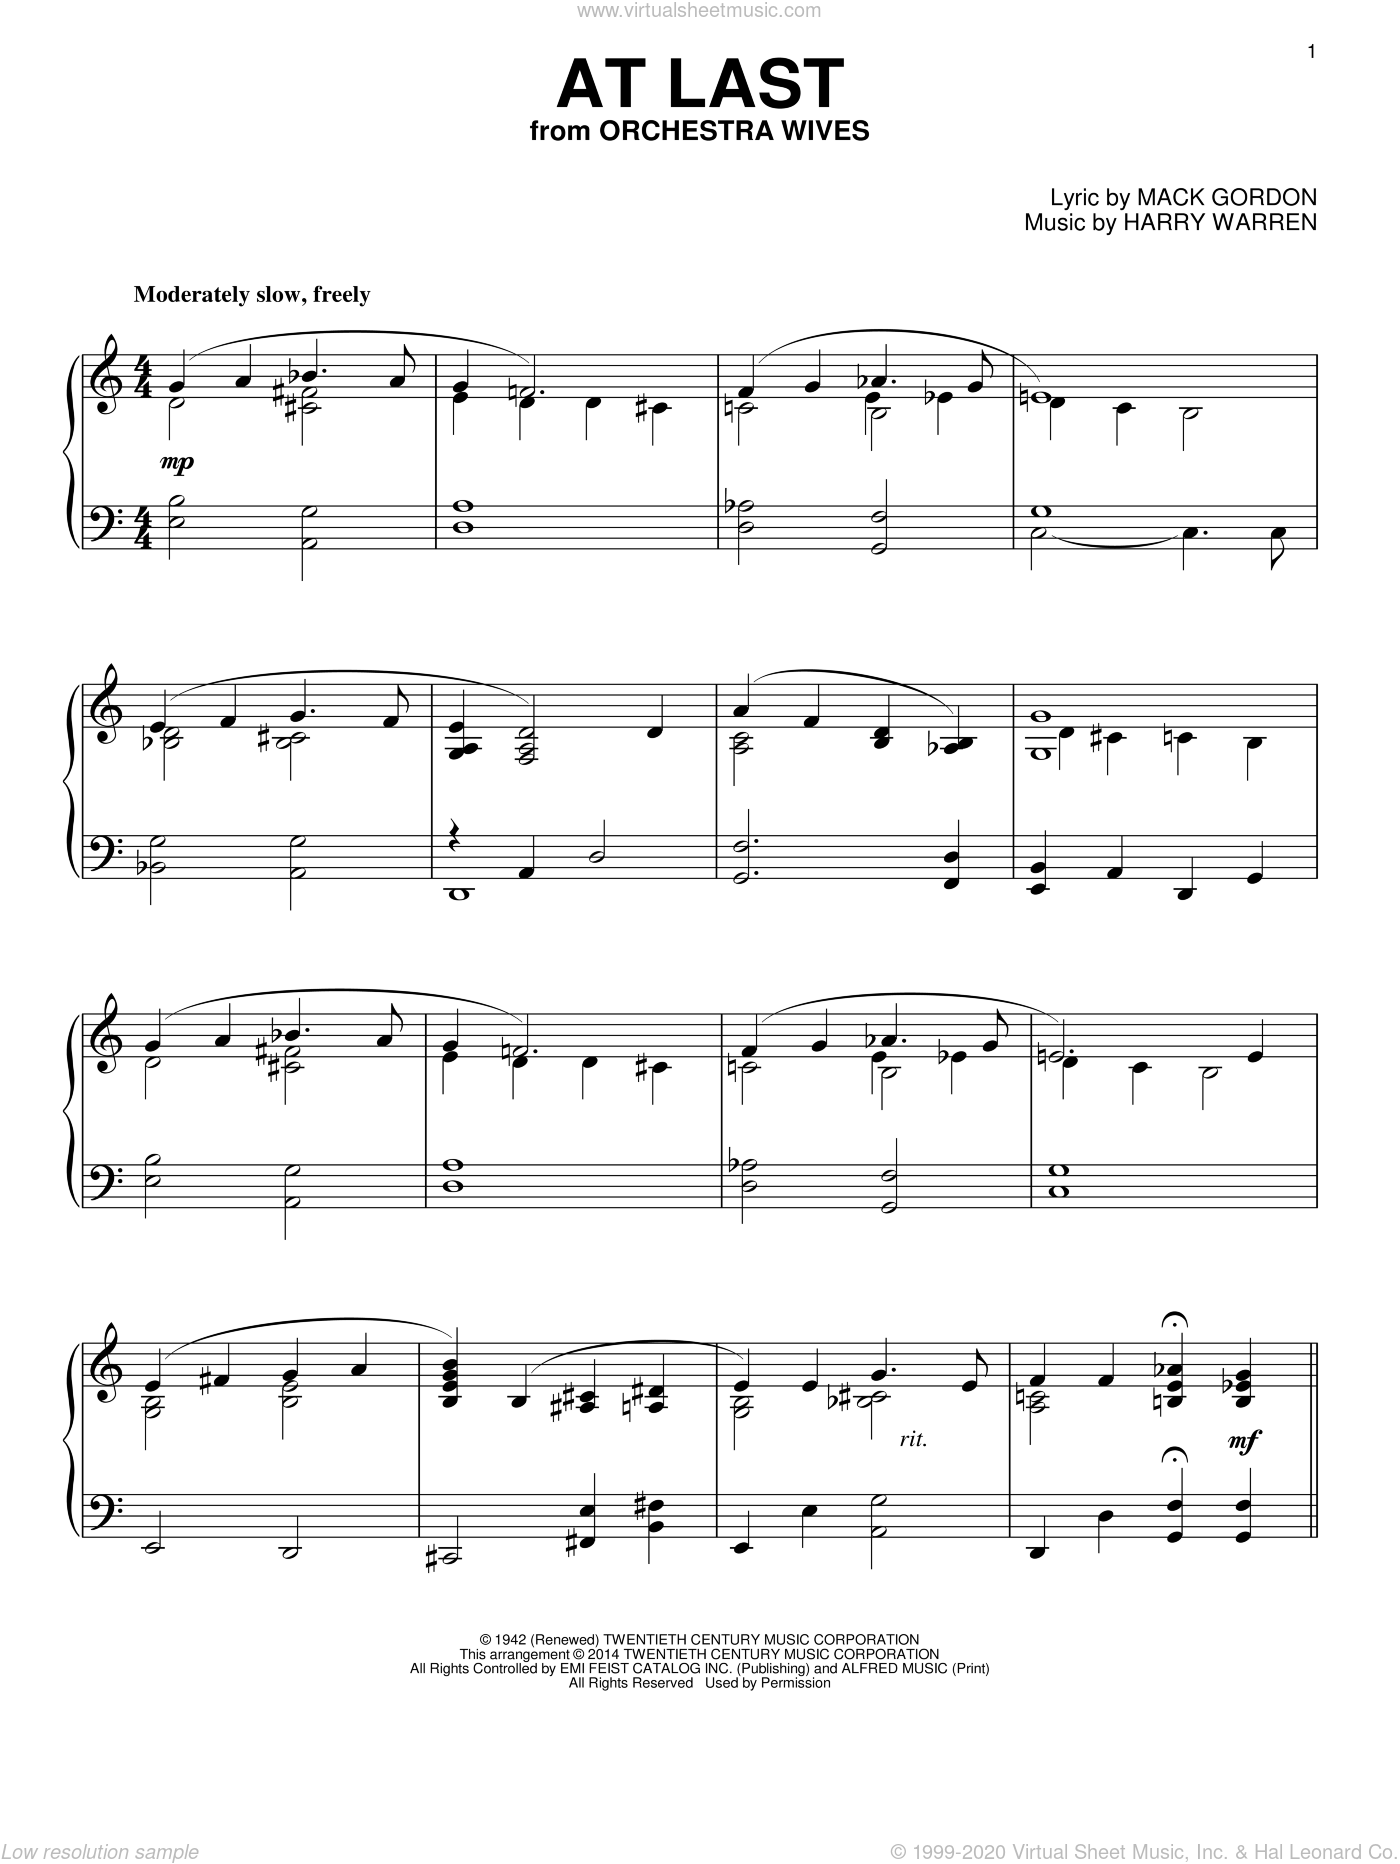 At Last sheet music for piano solo by Mack Gordon